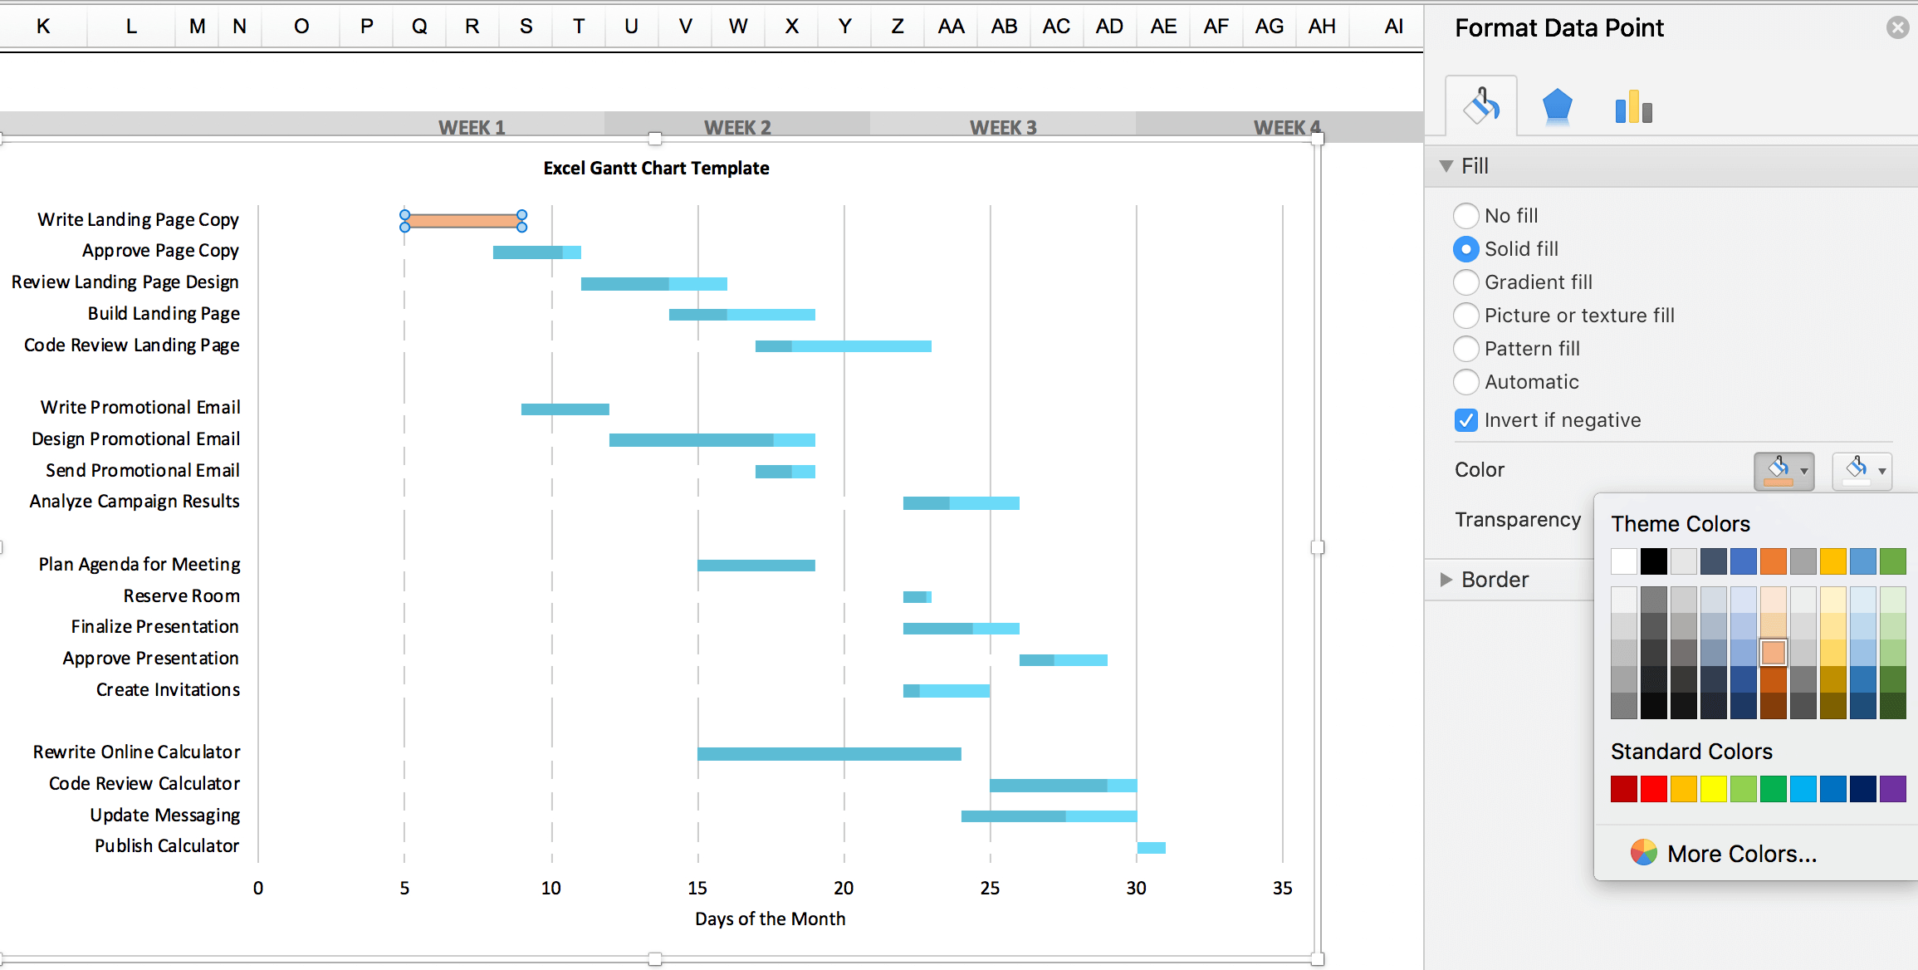 Free Gantt Chart Excel Template: Download Now | Teamgantt Throughout Gantt Chart Template In Excel 2007